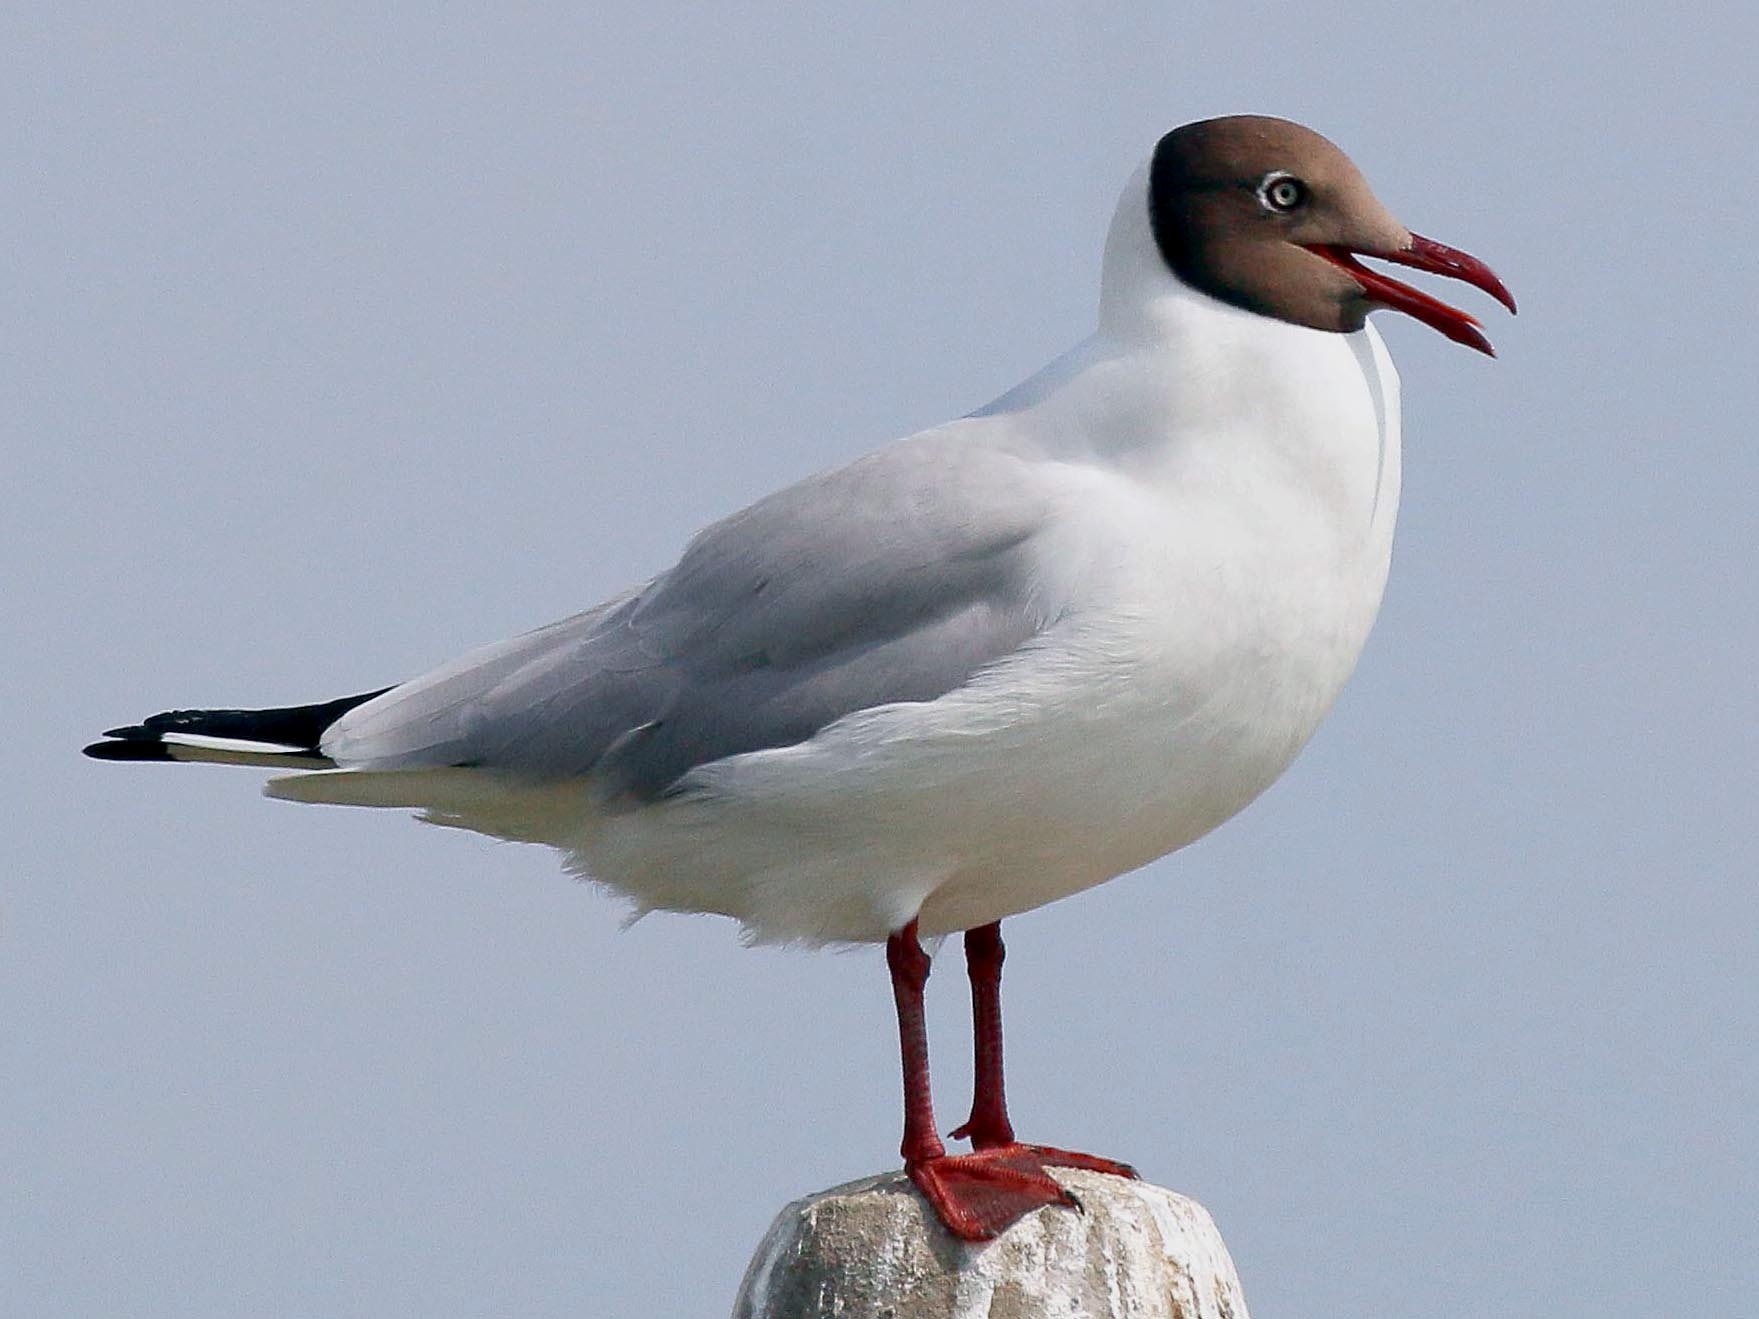 Brown-headed Gull - Neoh Hor Kee